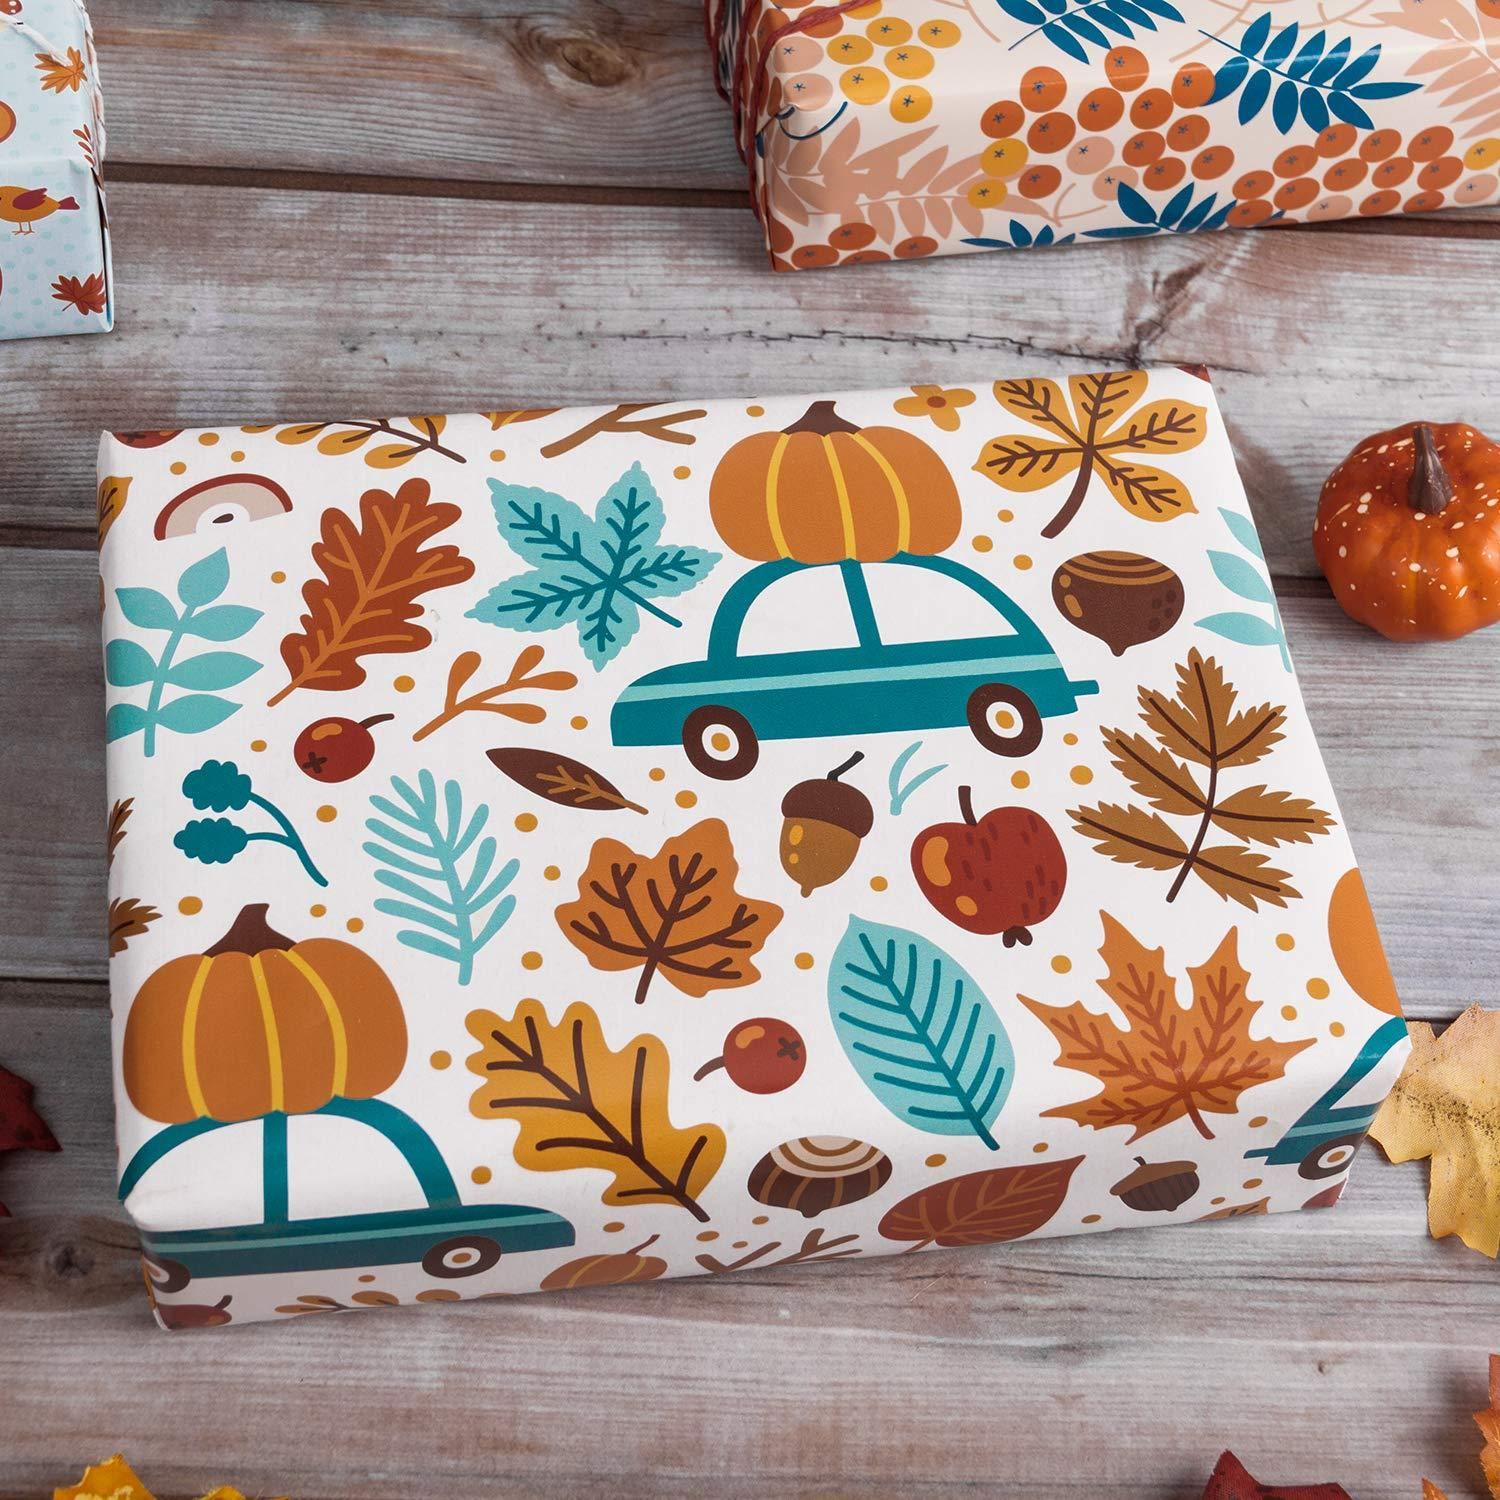 Wrapaholic Fall In Love Autumn Gift Wrapping Paper Sheet 6 Sheets Wrapaholicgifts